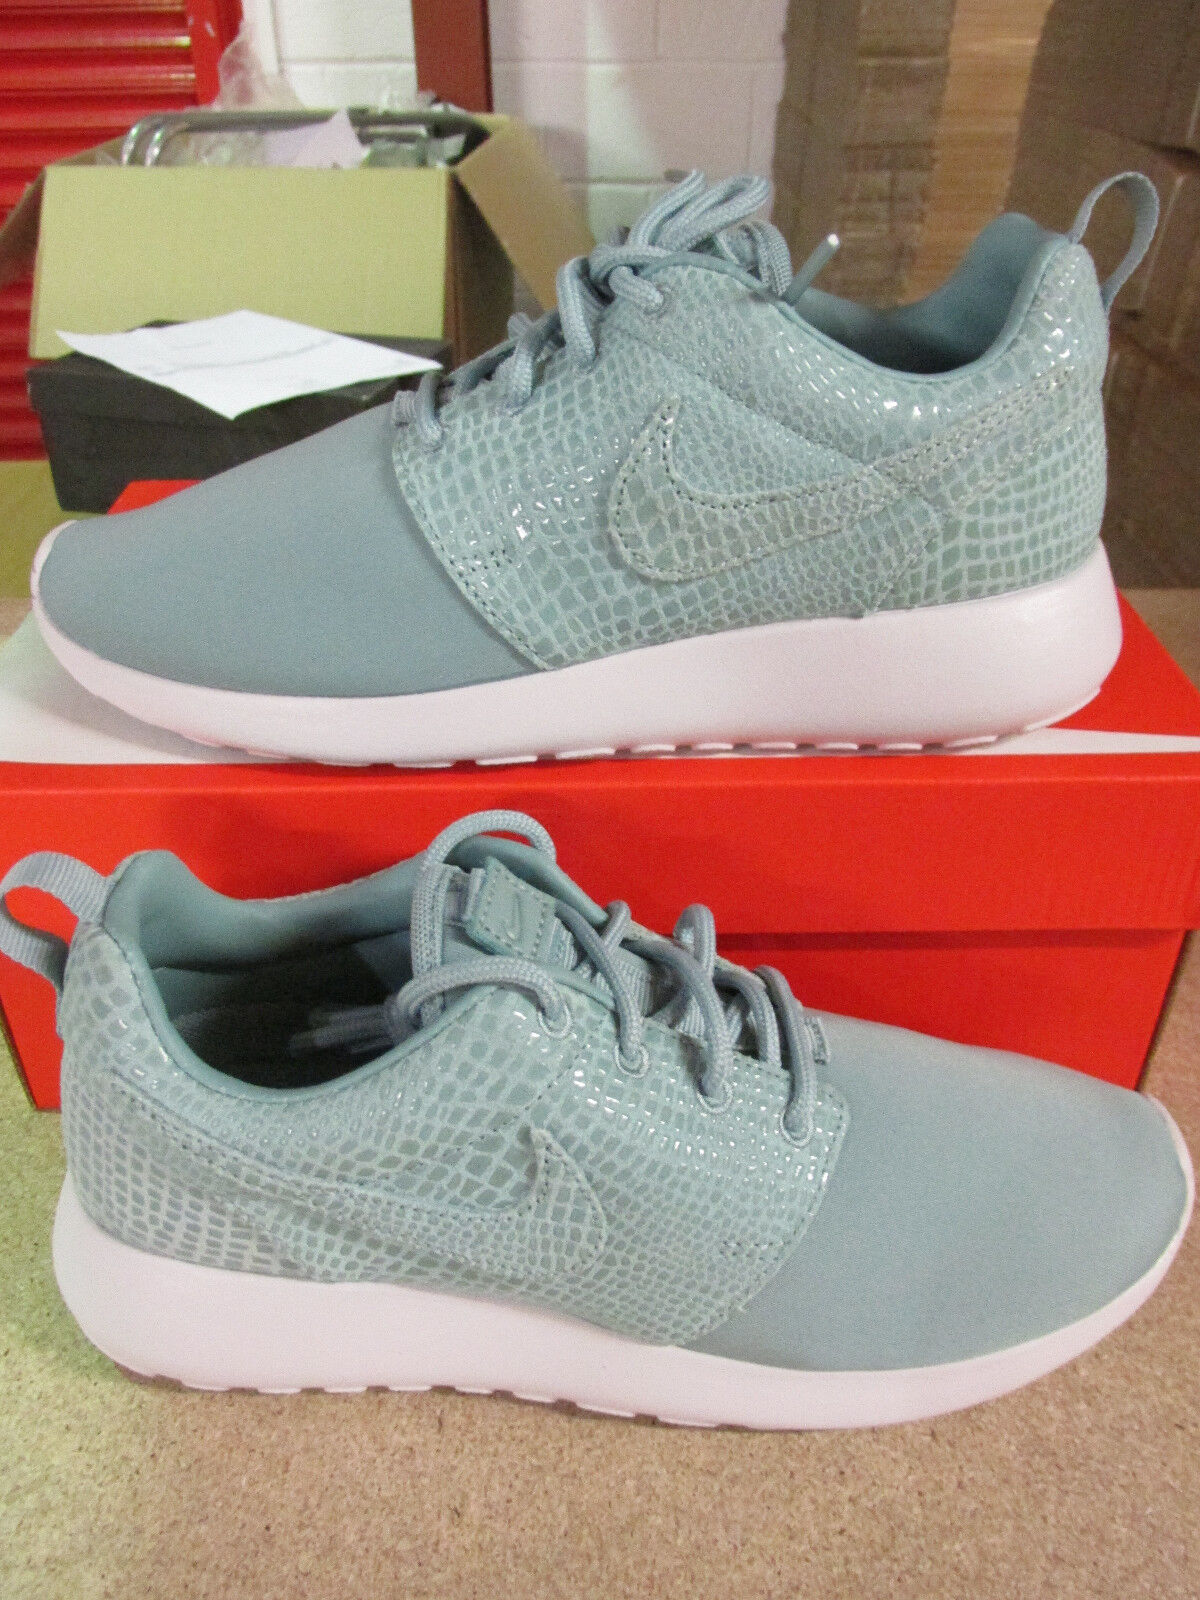 Nike Mujer Roshe One Estampado Zapatillas Zapatillas Corriendo 844958 004 Zapatillas Estampado 19d857